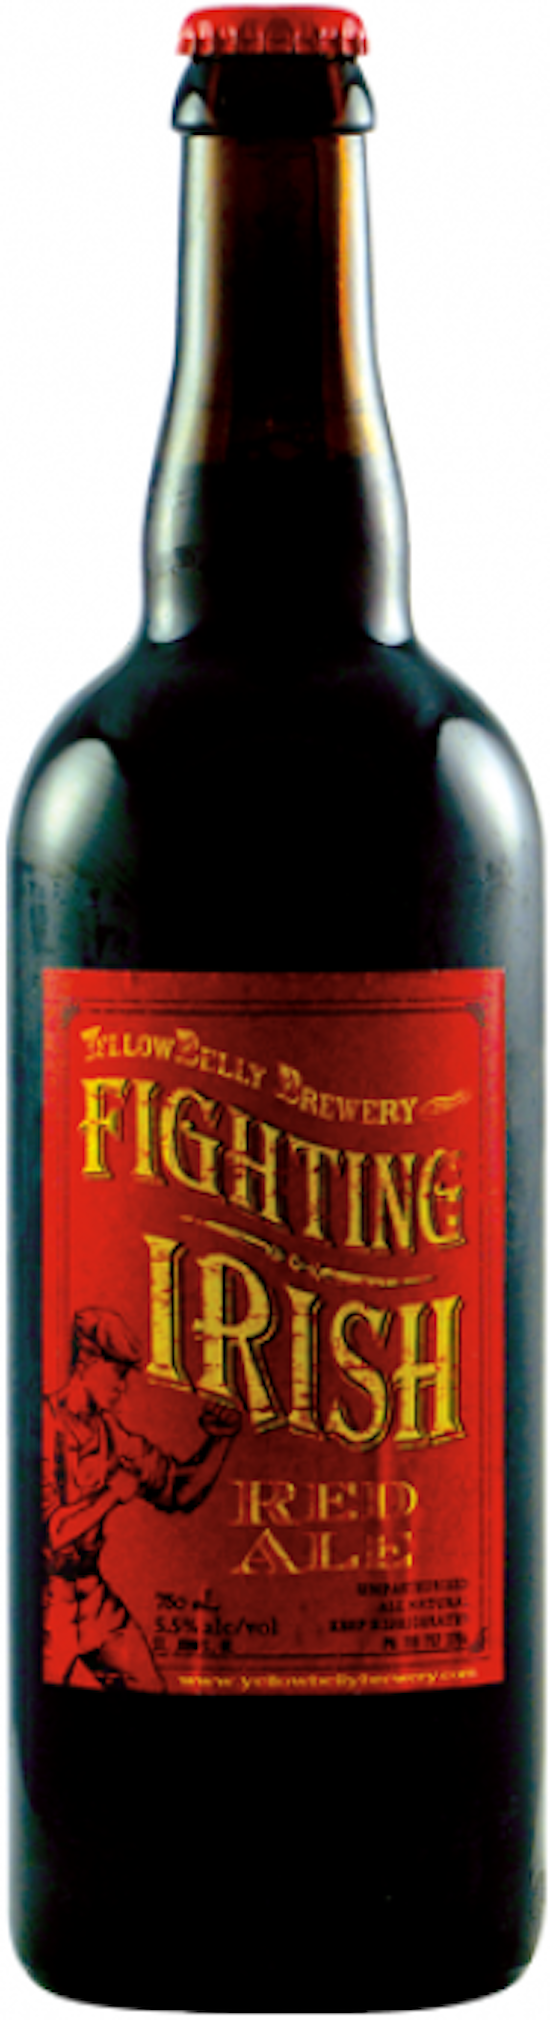 canada-day-beers-fighting-yellowbelly